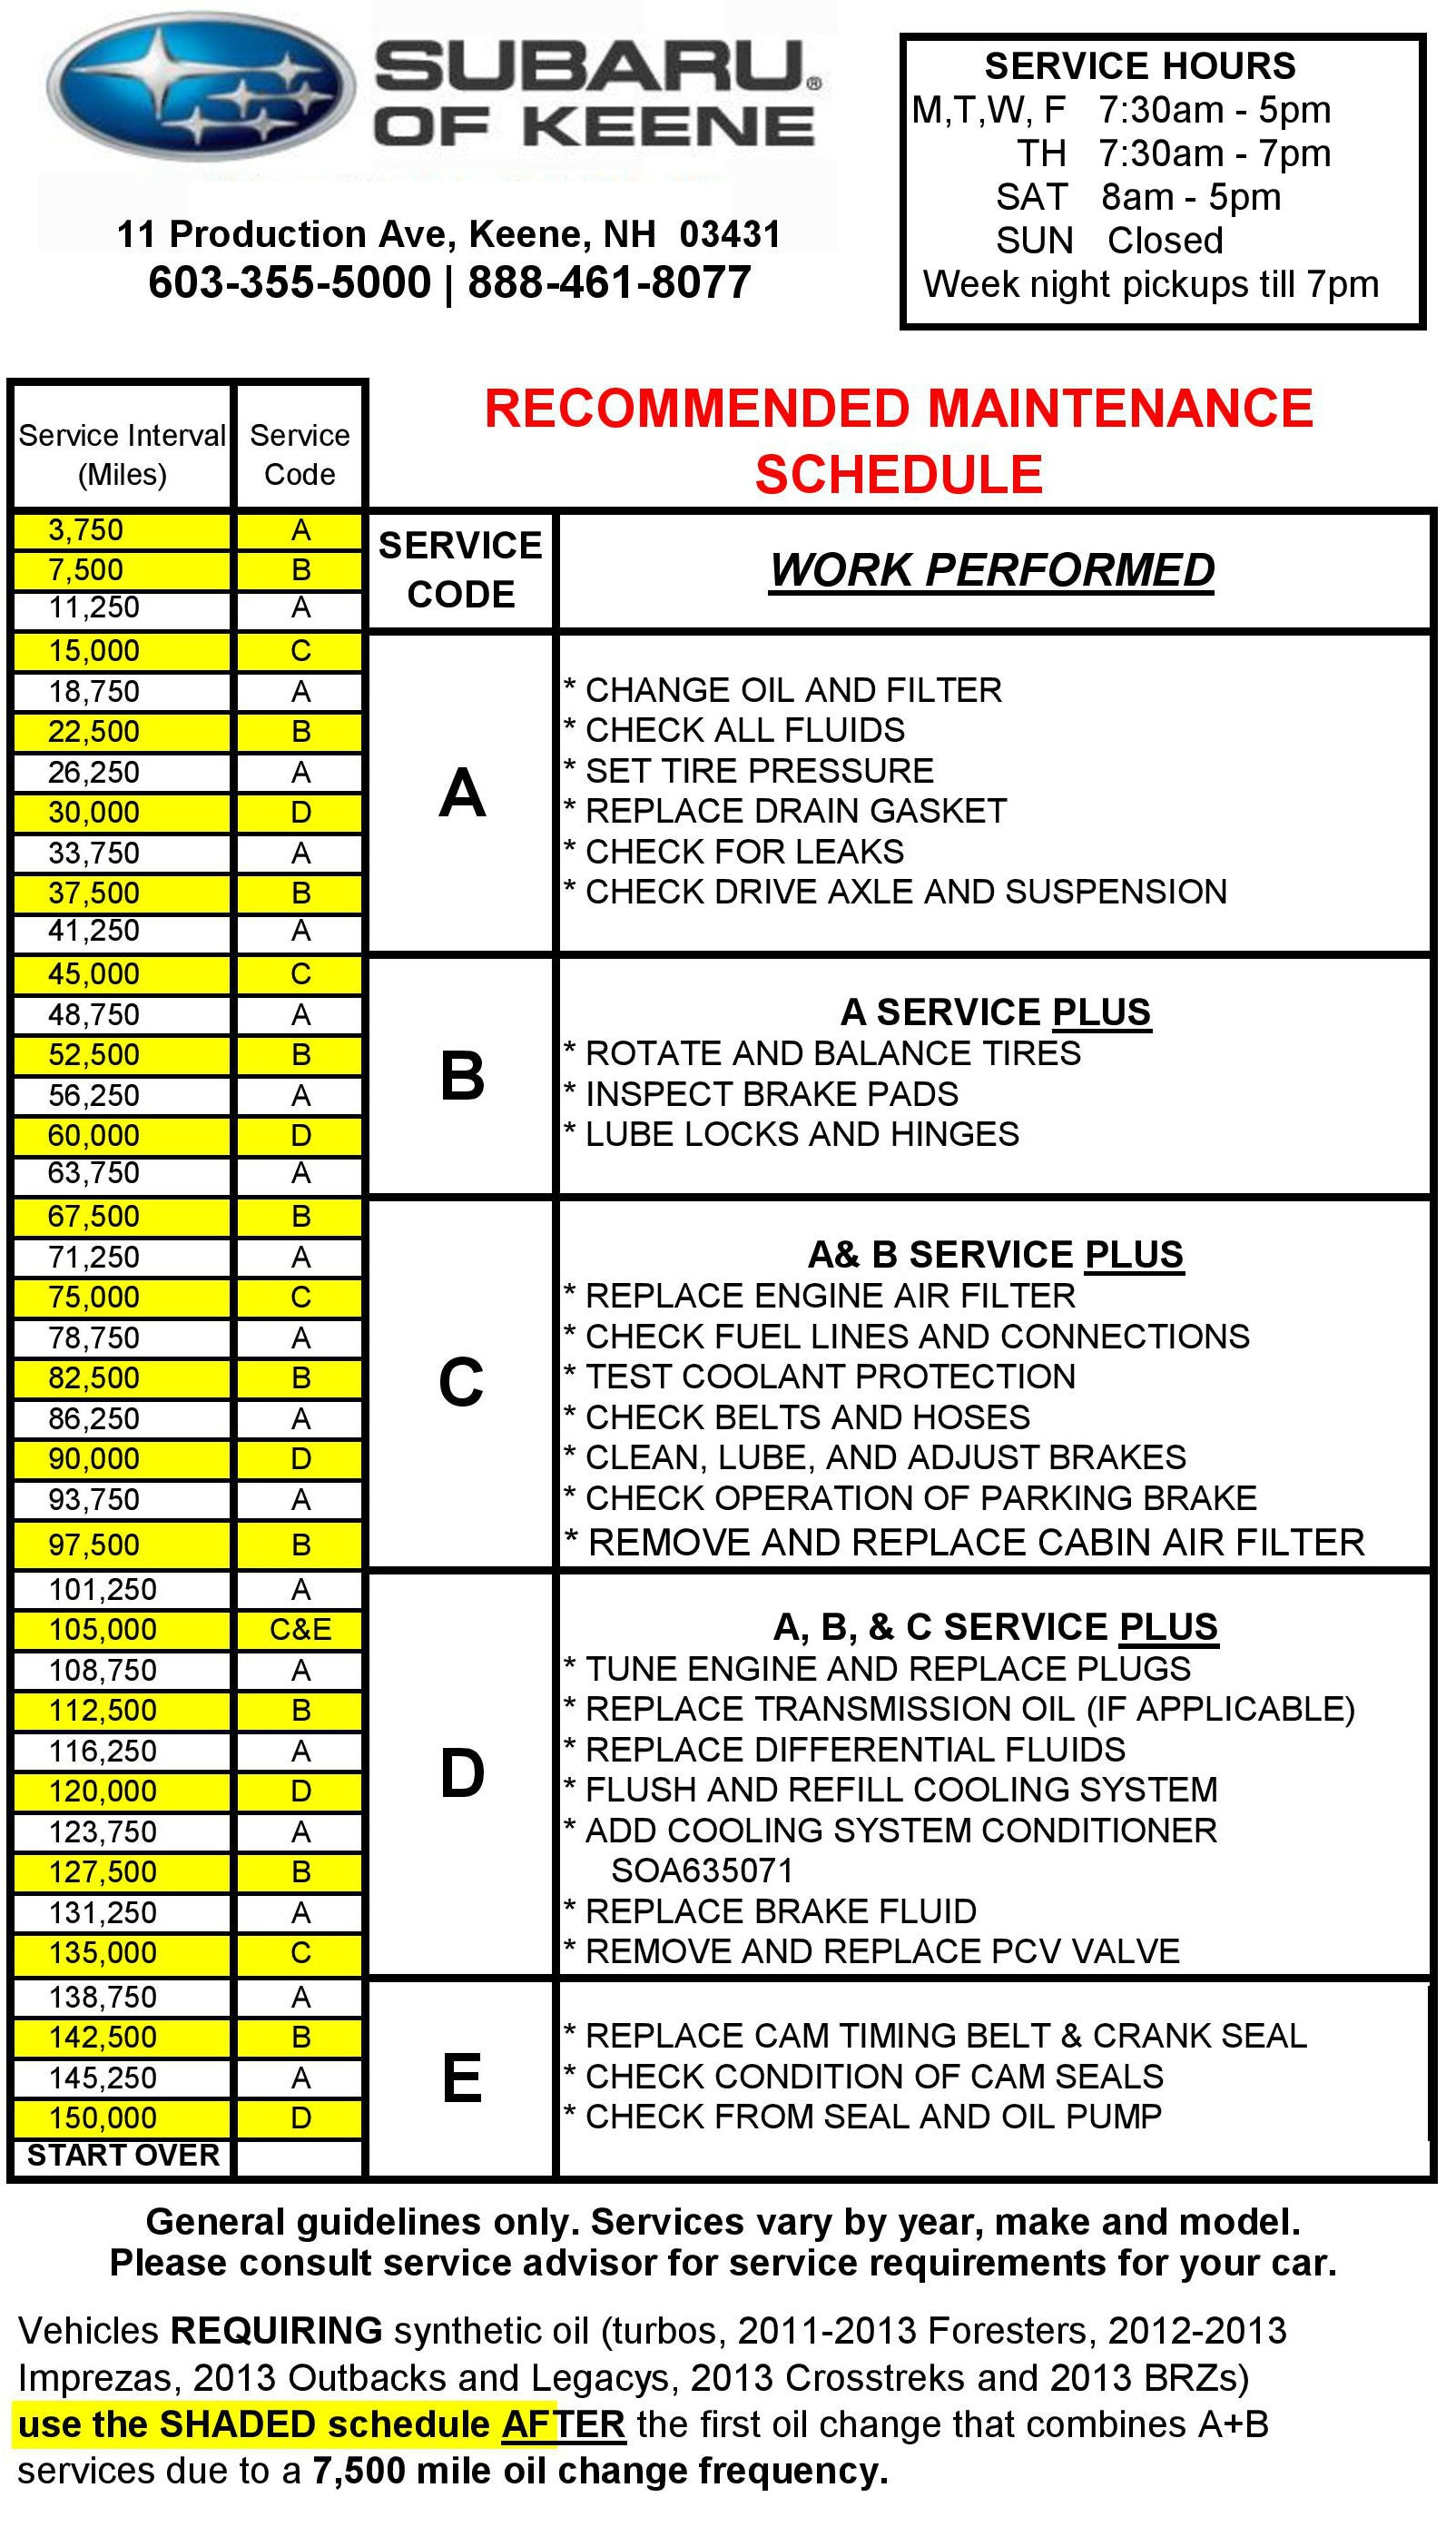 Subaru Service Recommended Schedule As Simple A B C